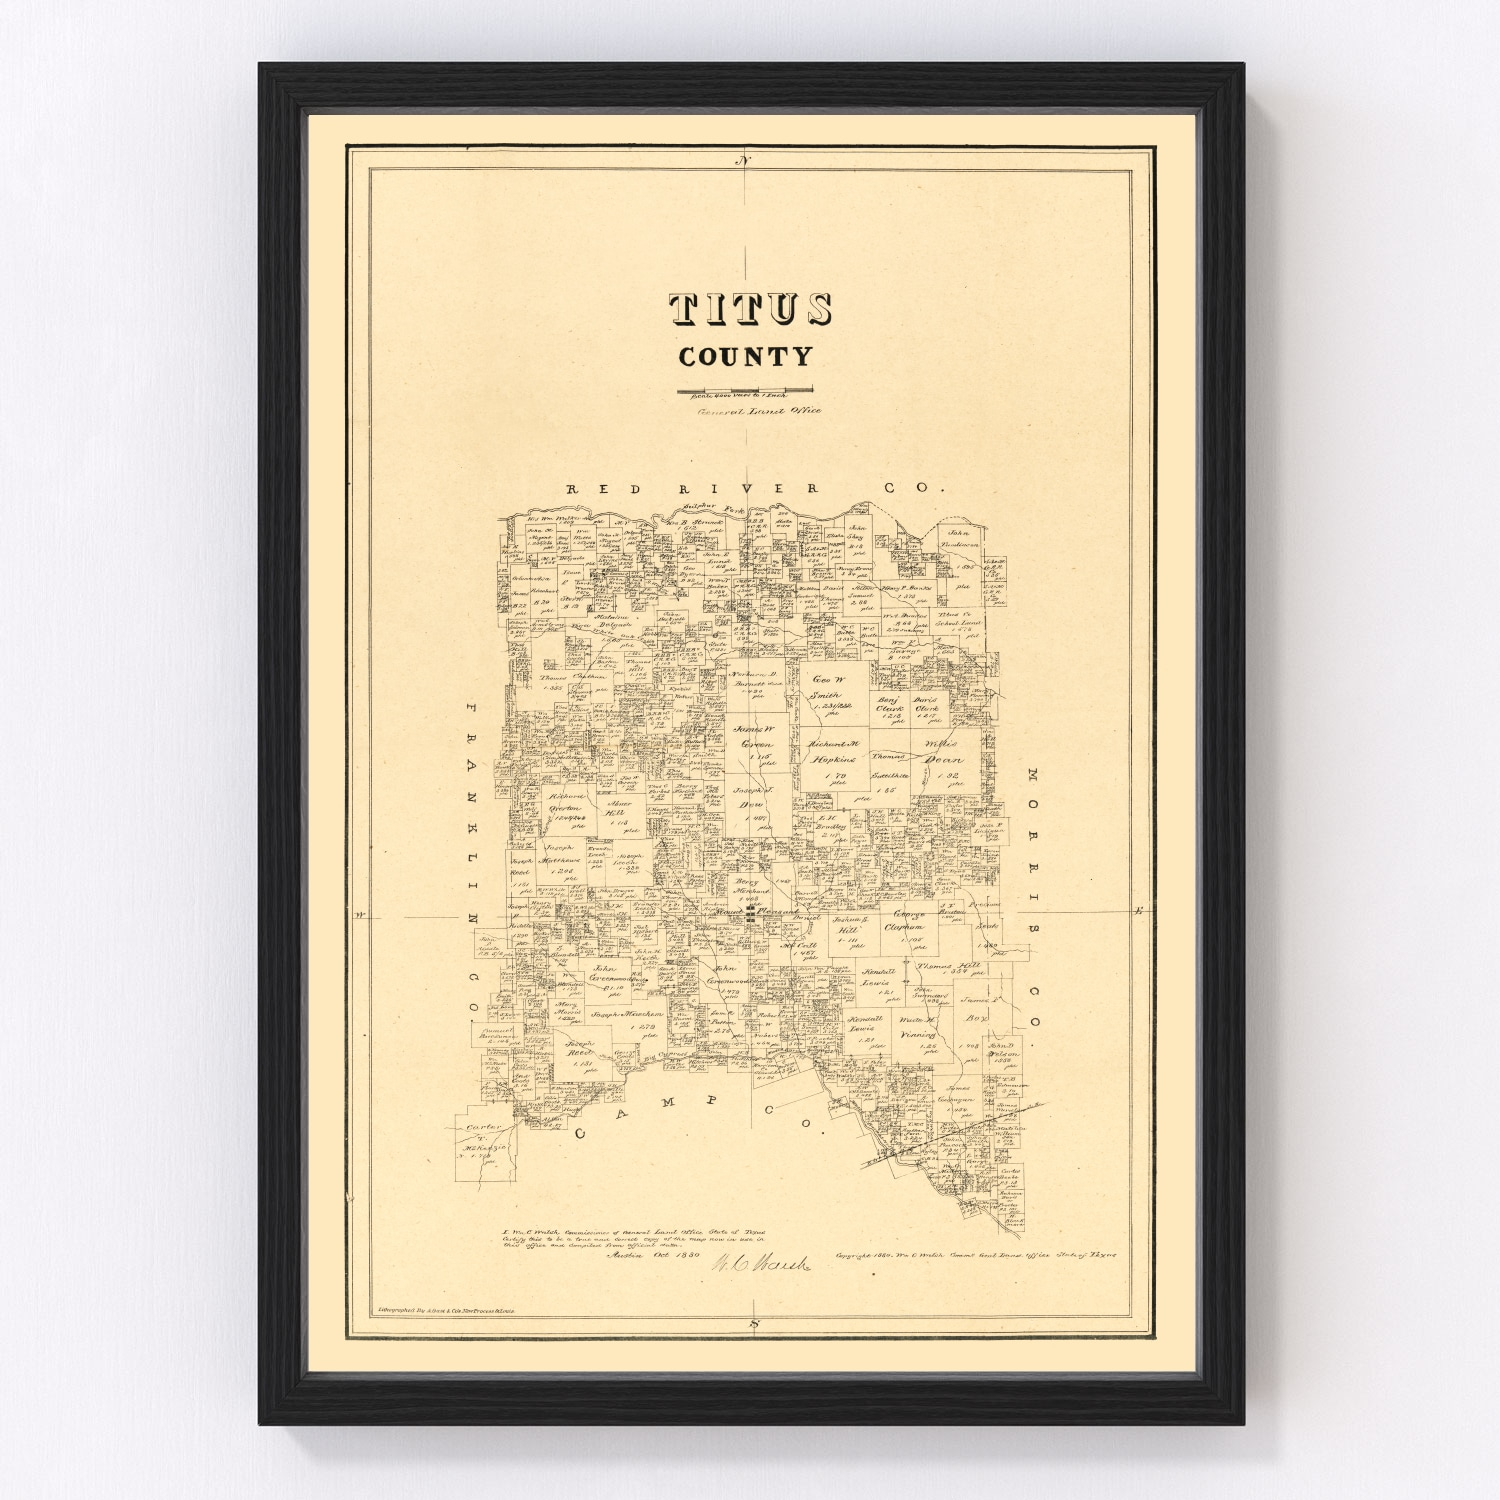 Vintage Map of Titus County, Texas 1880